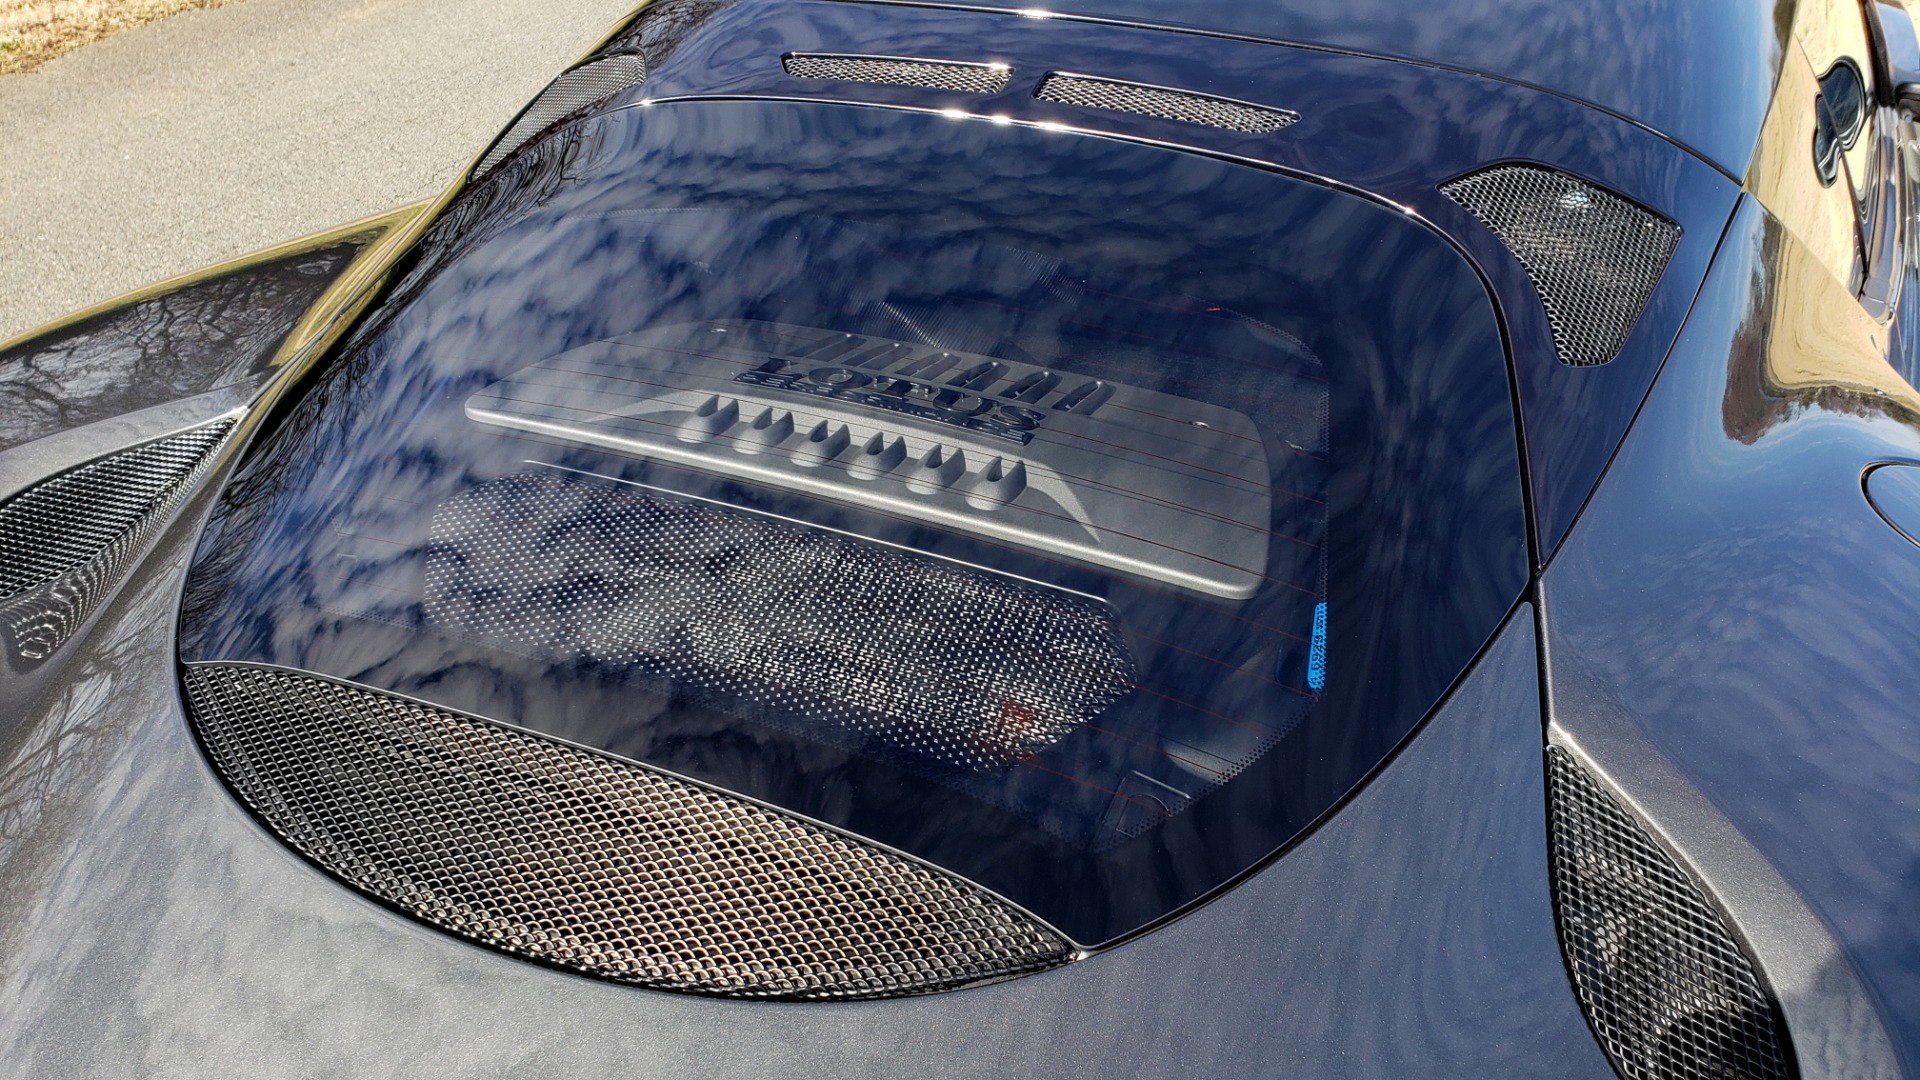 Used 2011 Lotus EVORA S 2+2 / 3.5L V6 / 6-SPD MANUAL / PIONEER / REARVIEW / LOW MILES for sale Sold at Formula Imports in Charlotte NC 28227 12